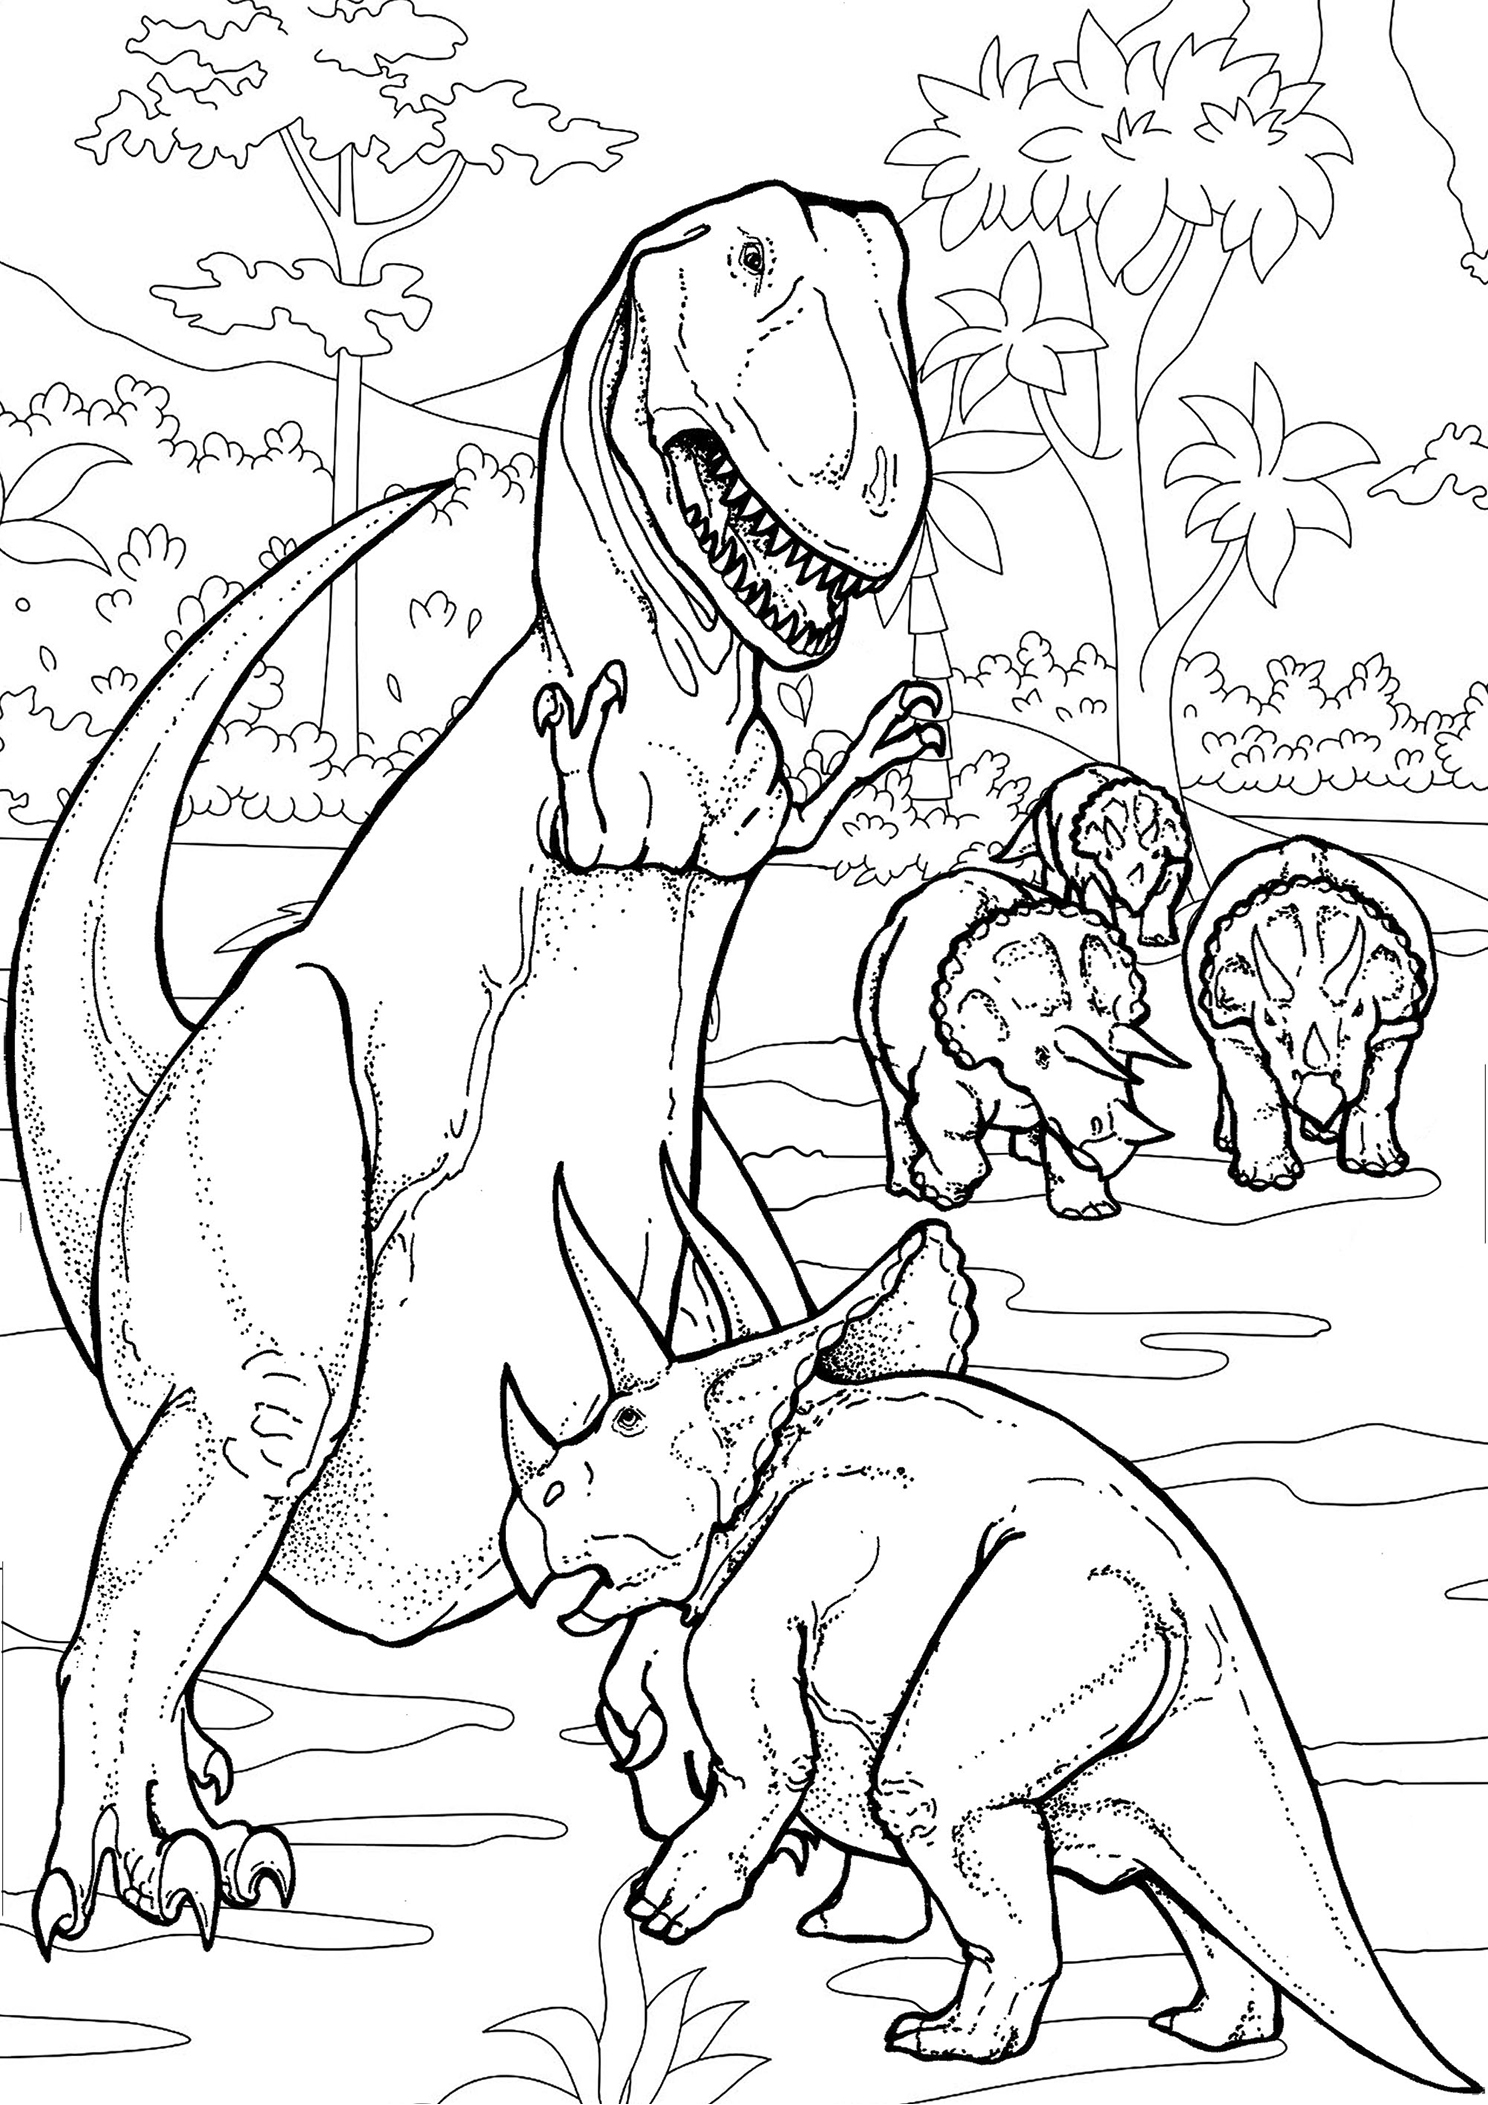 Coloriage T-rex vs Triceratops